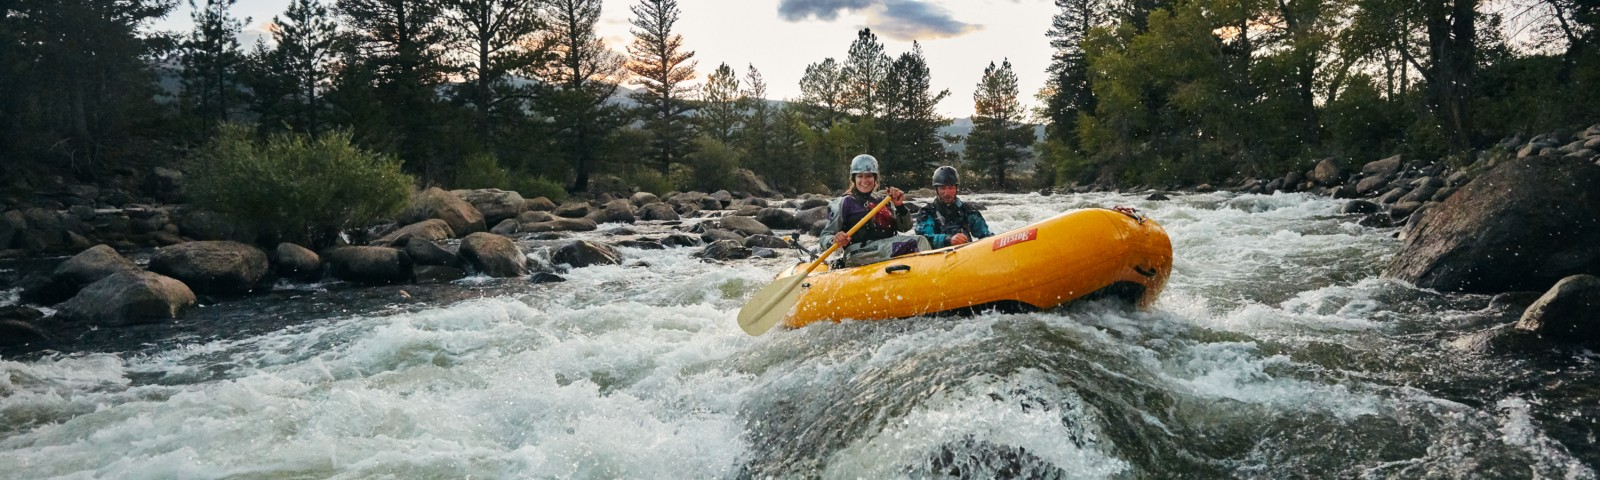 White water rafting in Buena Vista for Huck Adventures